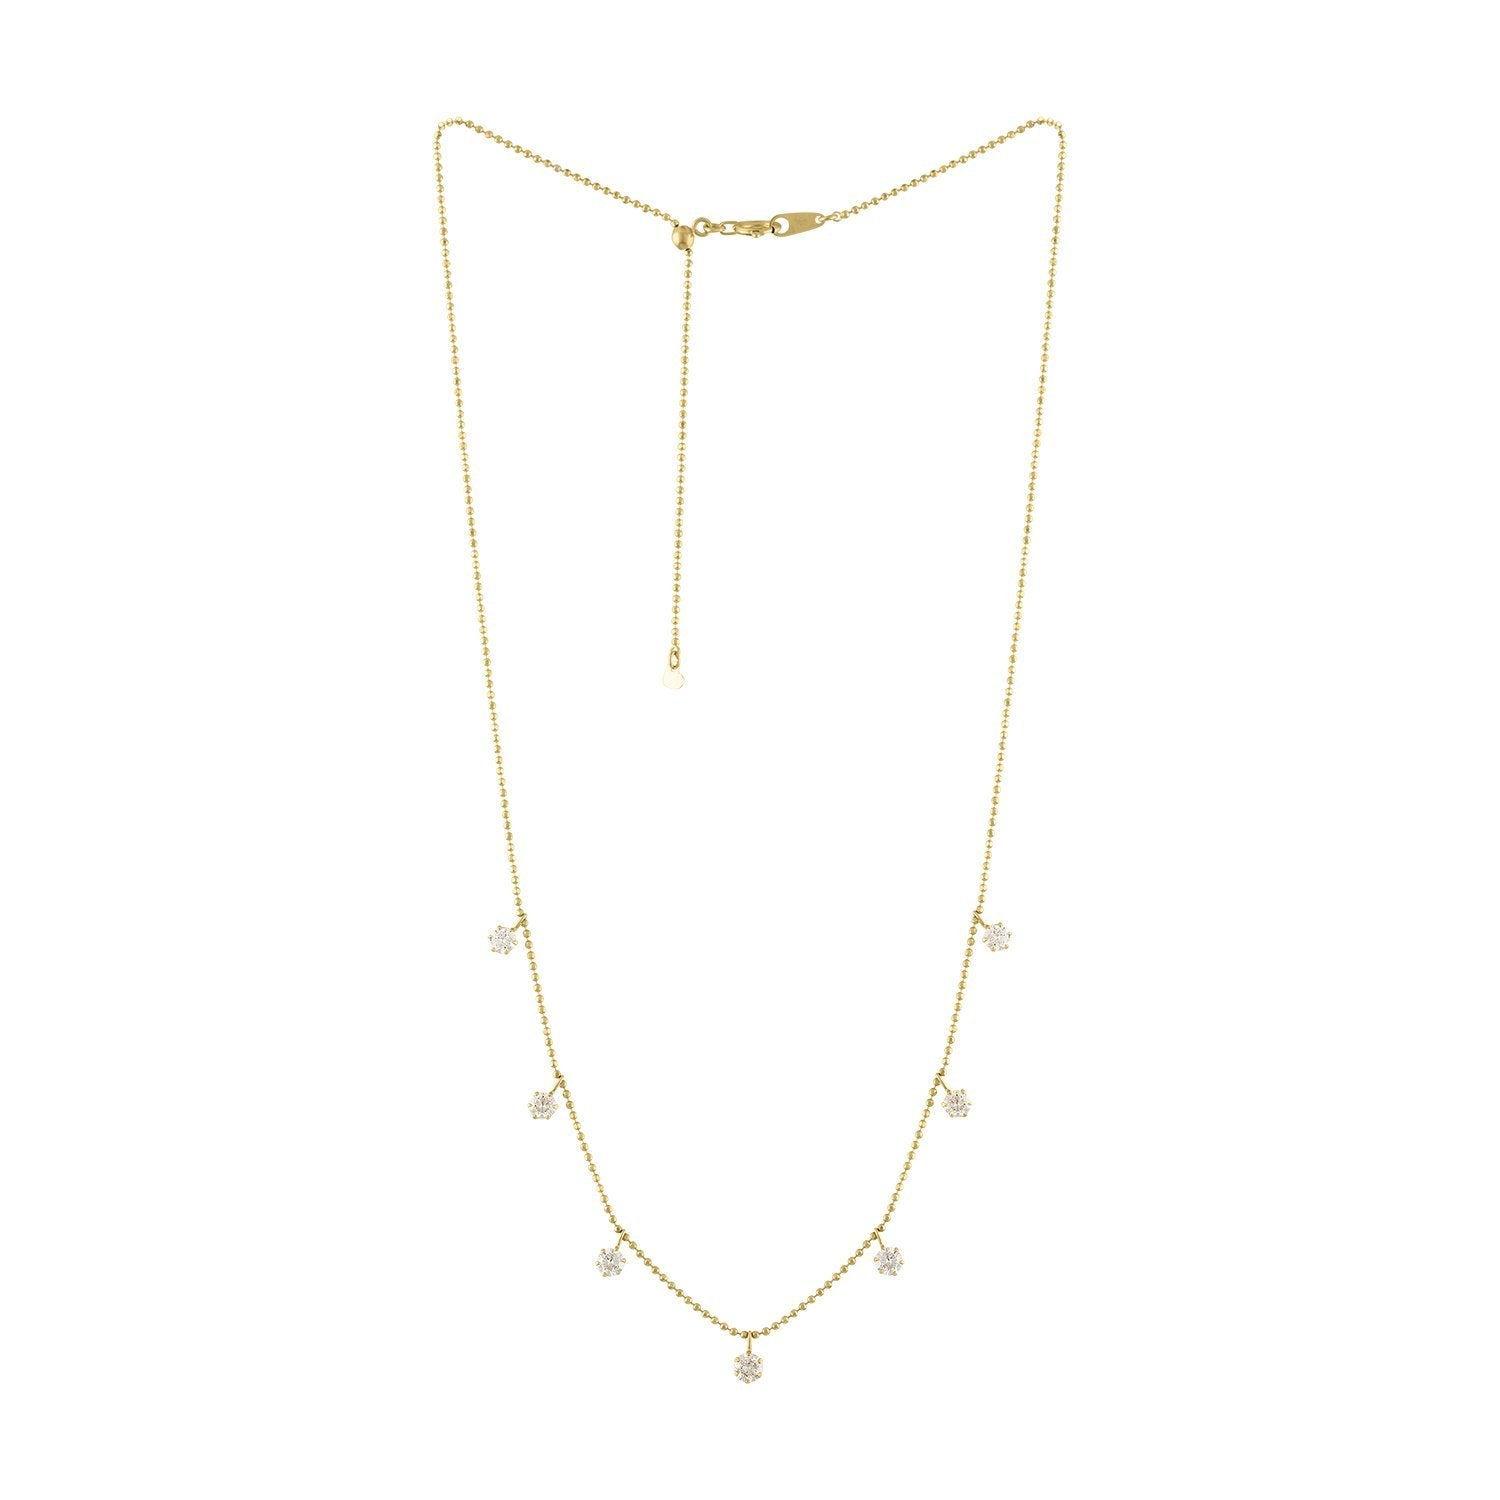 Vincents Fine Jewelry | Jane Kaye | Icicle Choker Necklace